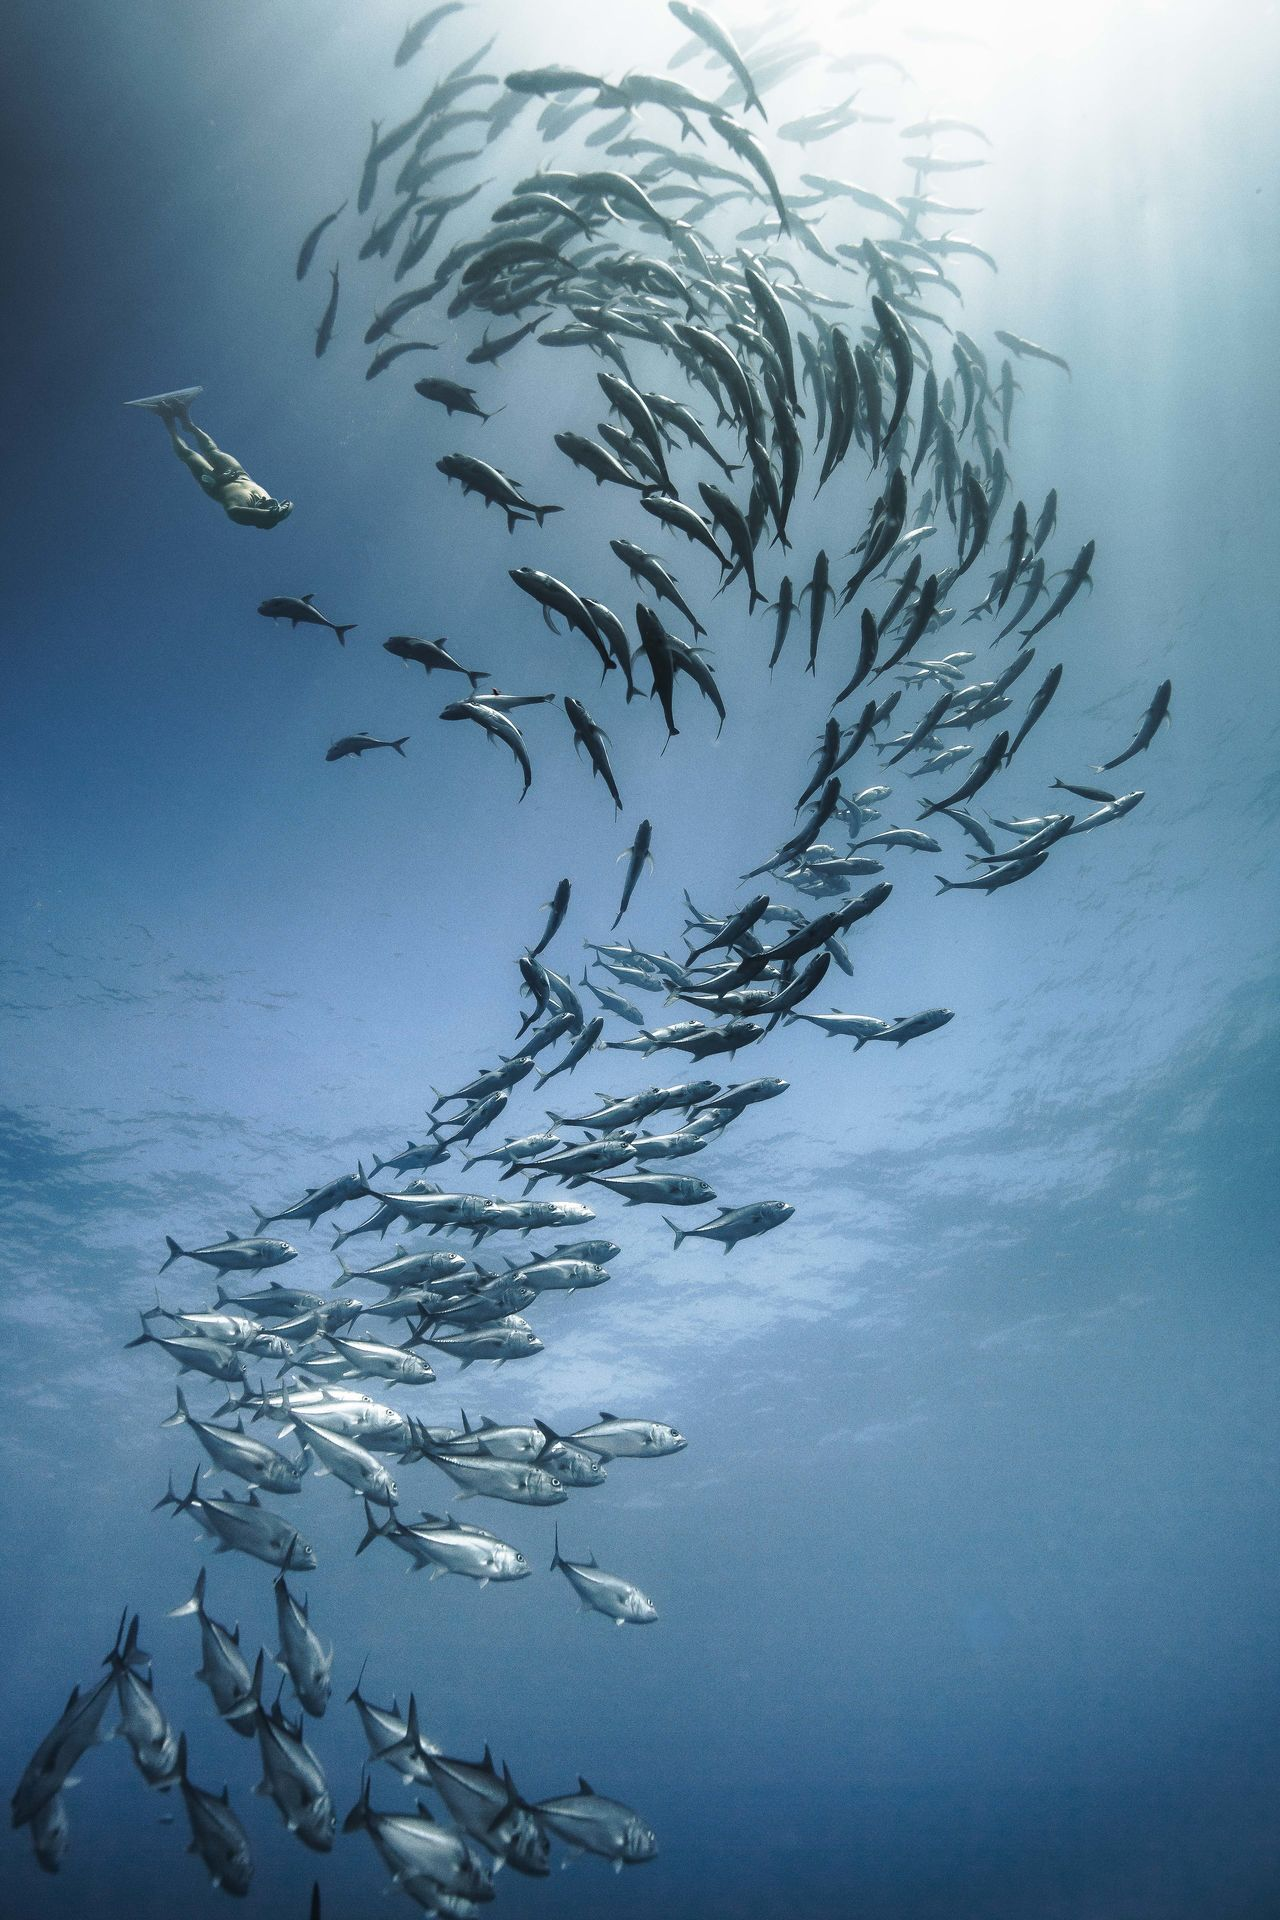 Low angle view of scuba diver and school of fish swimming in sea